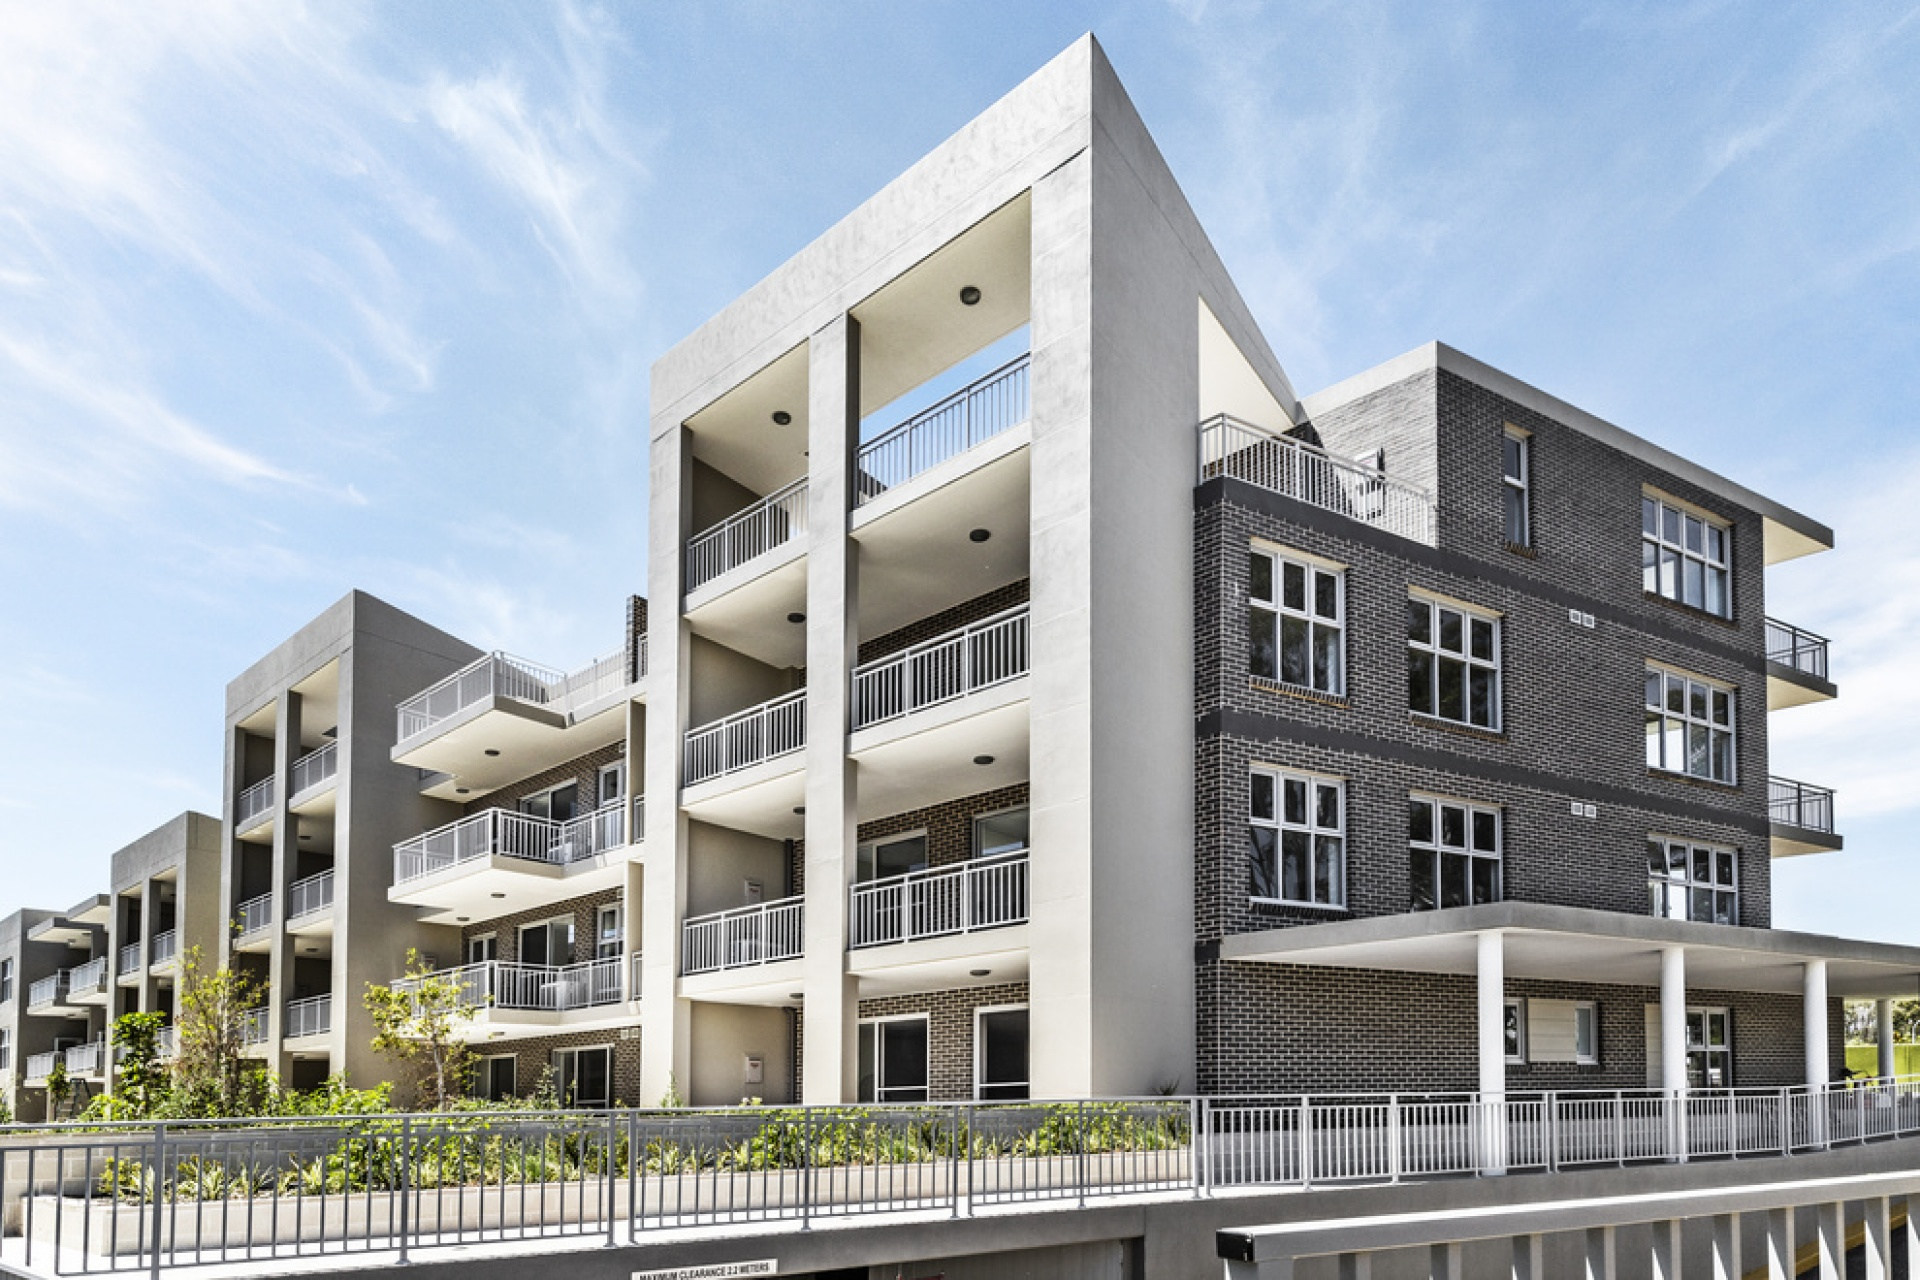 2 Bedrooms, Apartment, Leased, Regent Honeyeater Grove, 2 Bathrooms, Listing ID 1372, North Kellyville, NSW, Australia, 2155,